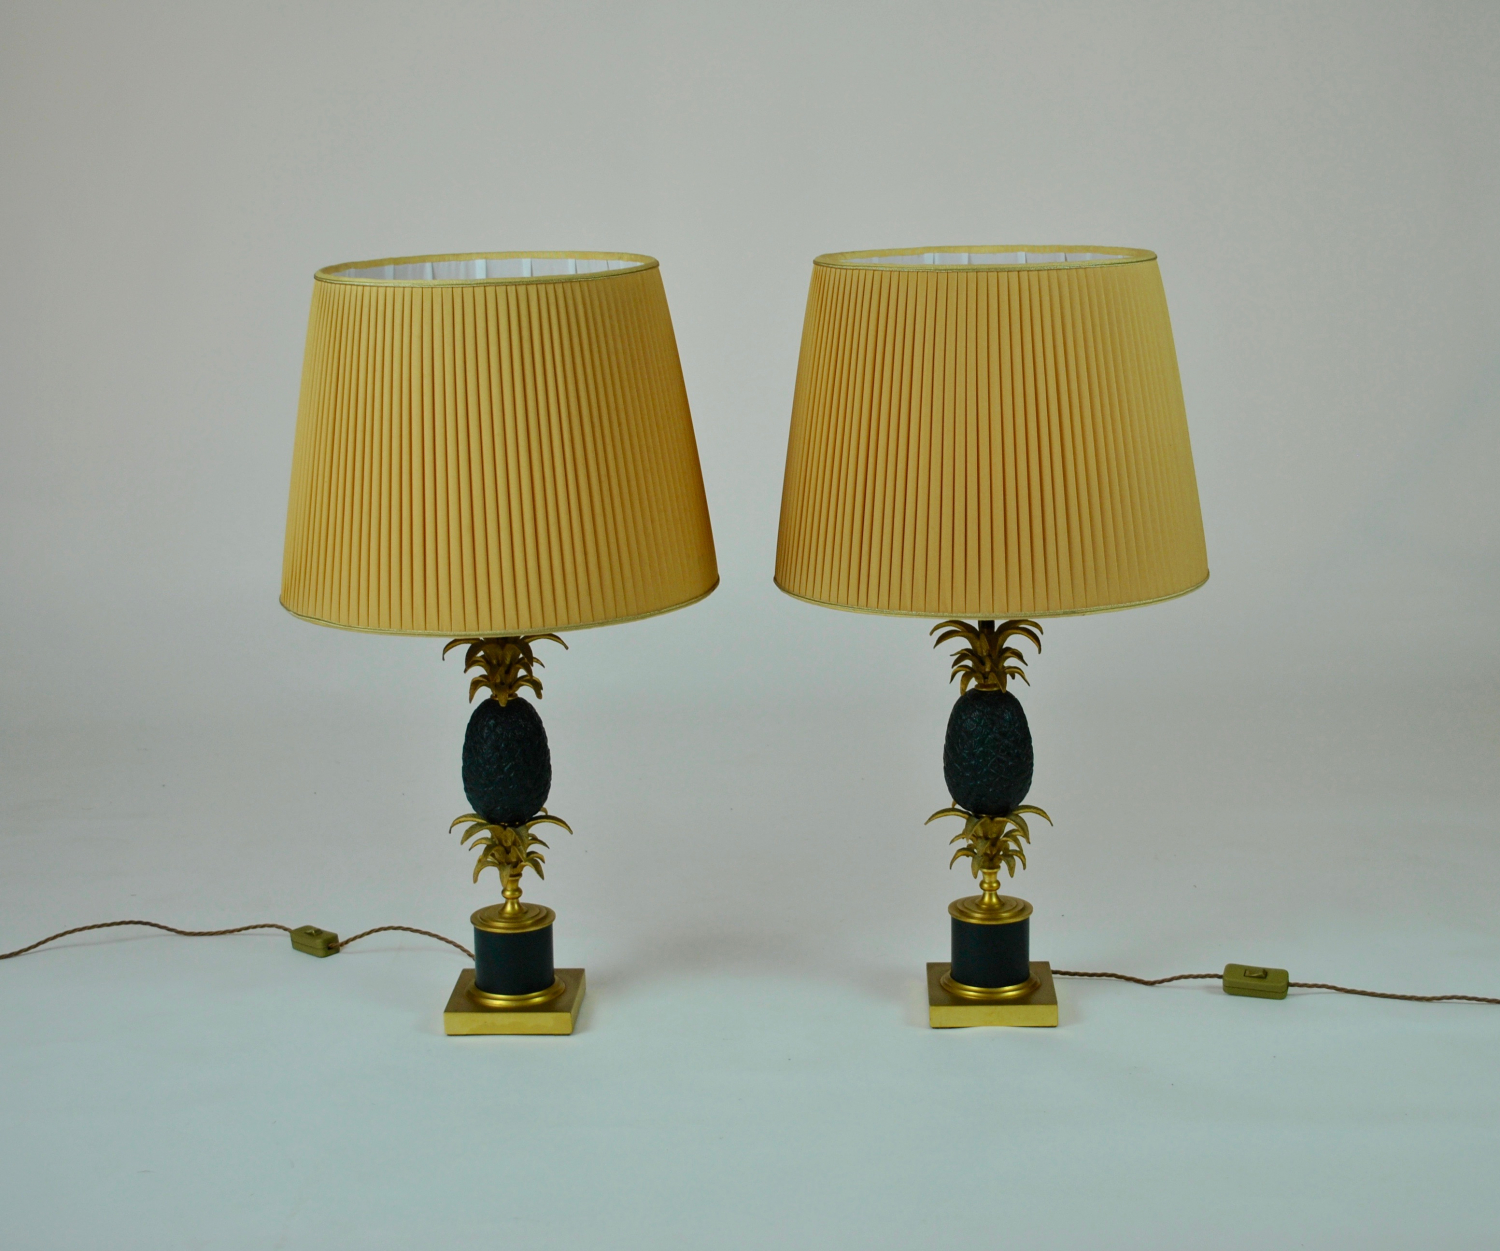 Bronze pineapple lamps